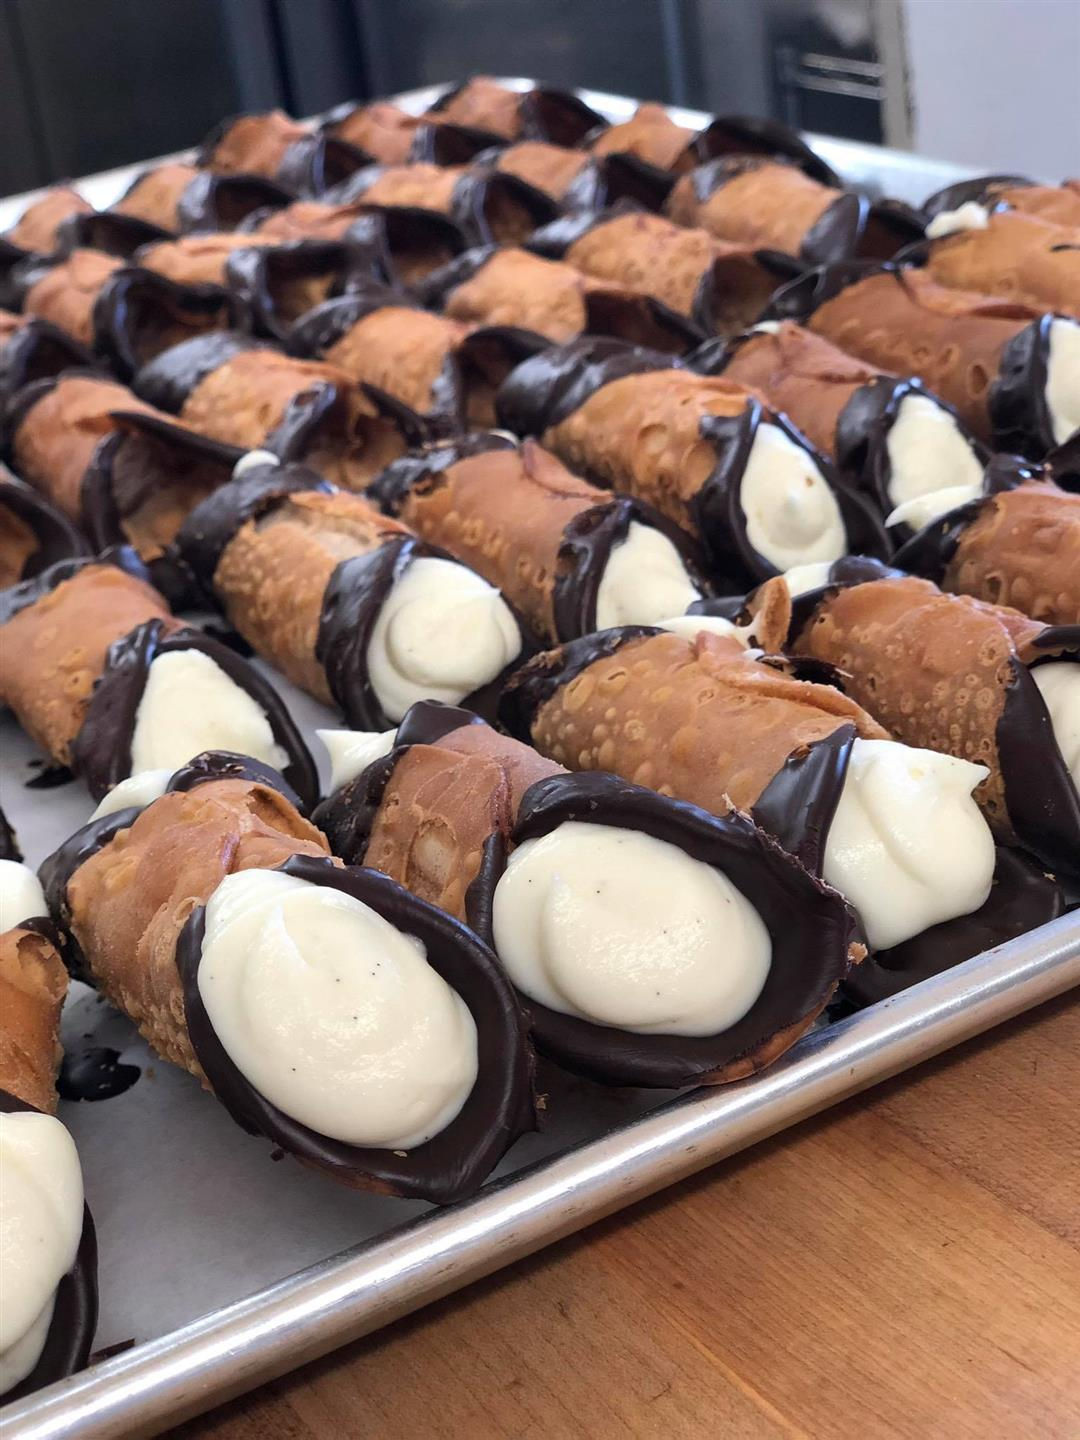 try of cannolis